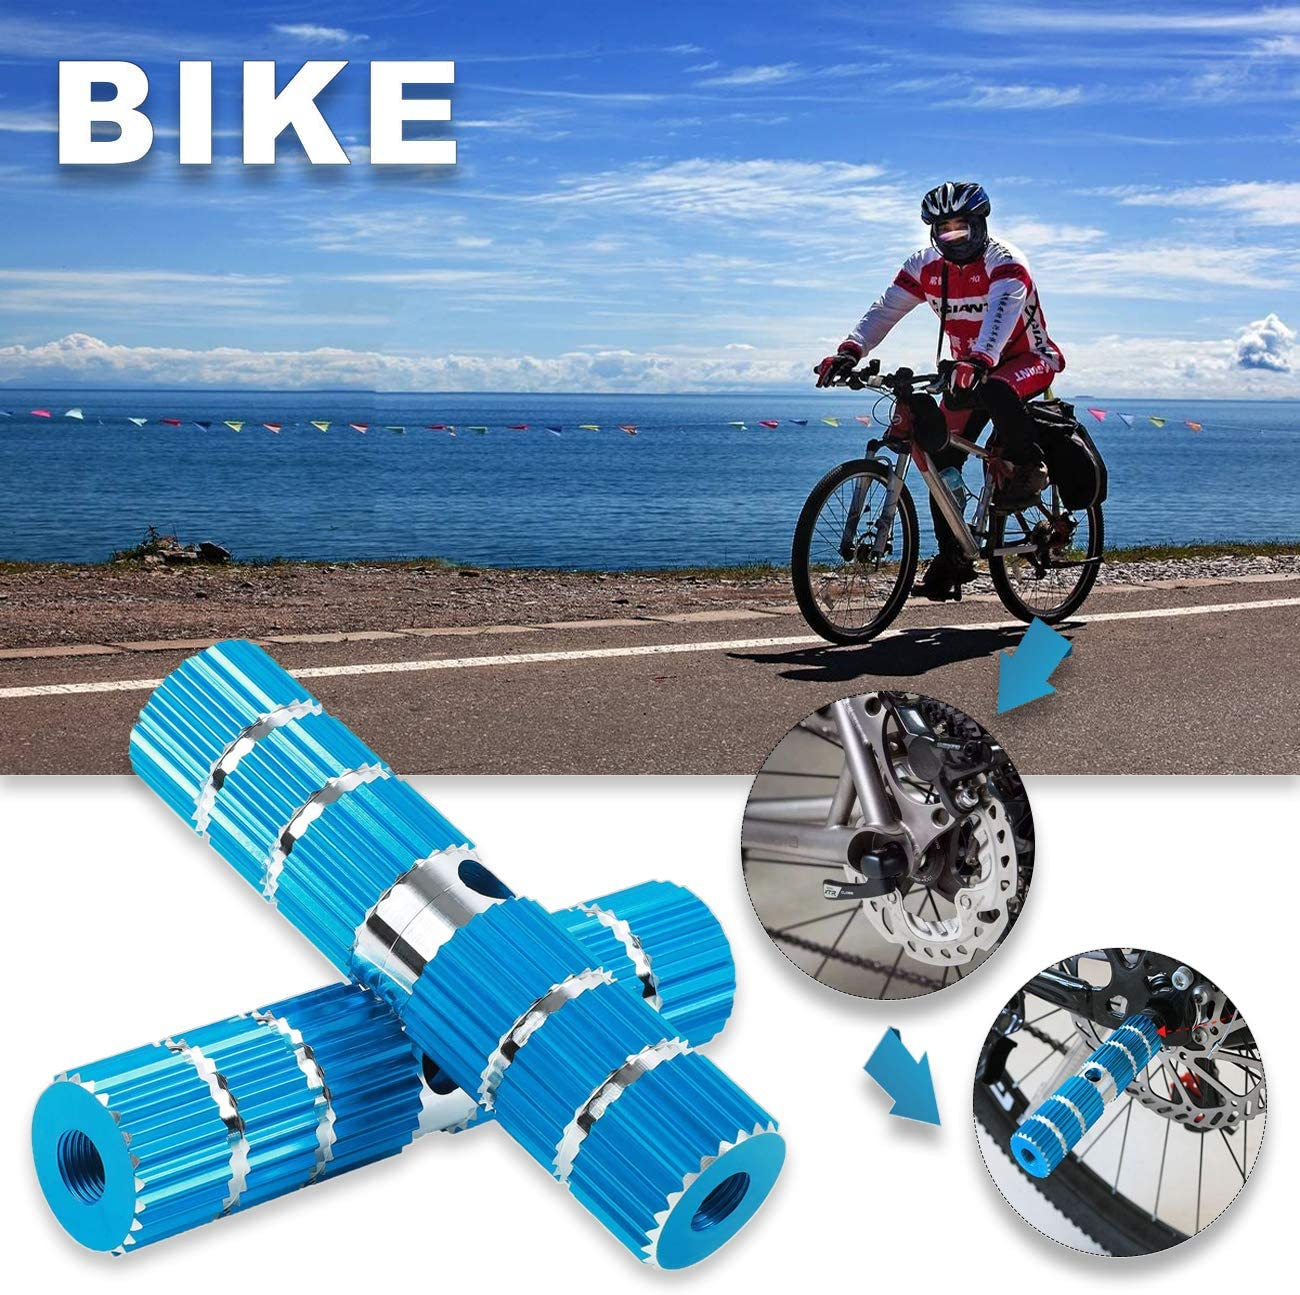 Reofrey Bike Pegs 2PCS Aluminum Alloy Foot Pedals Backseats Stands Rest Anti-Slip Stunt Pedal for BMX Mountain Bicycle Cycling Fit 3//8 inch Axles Blue 2.8 Length